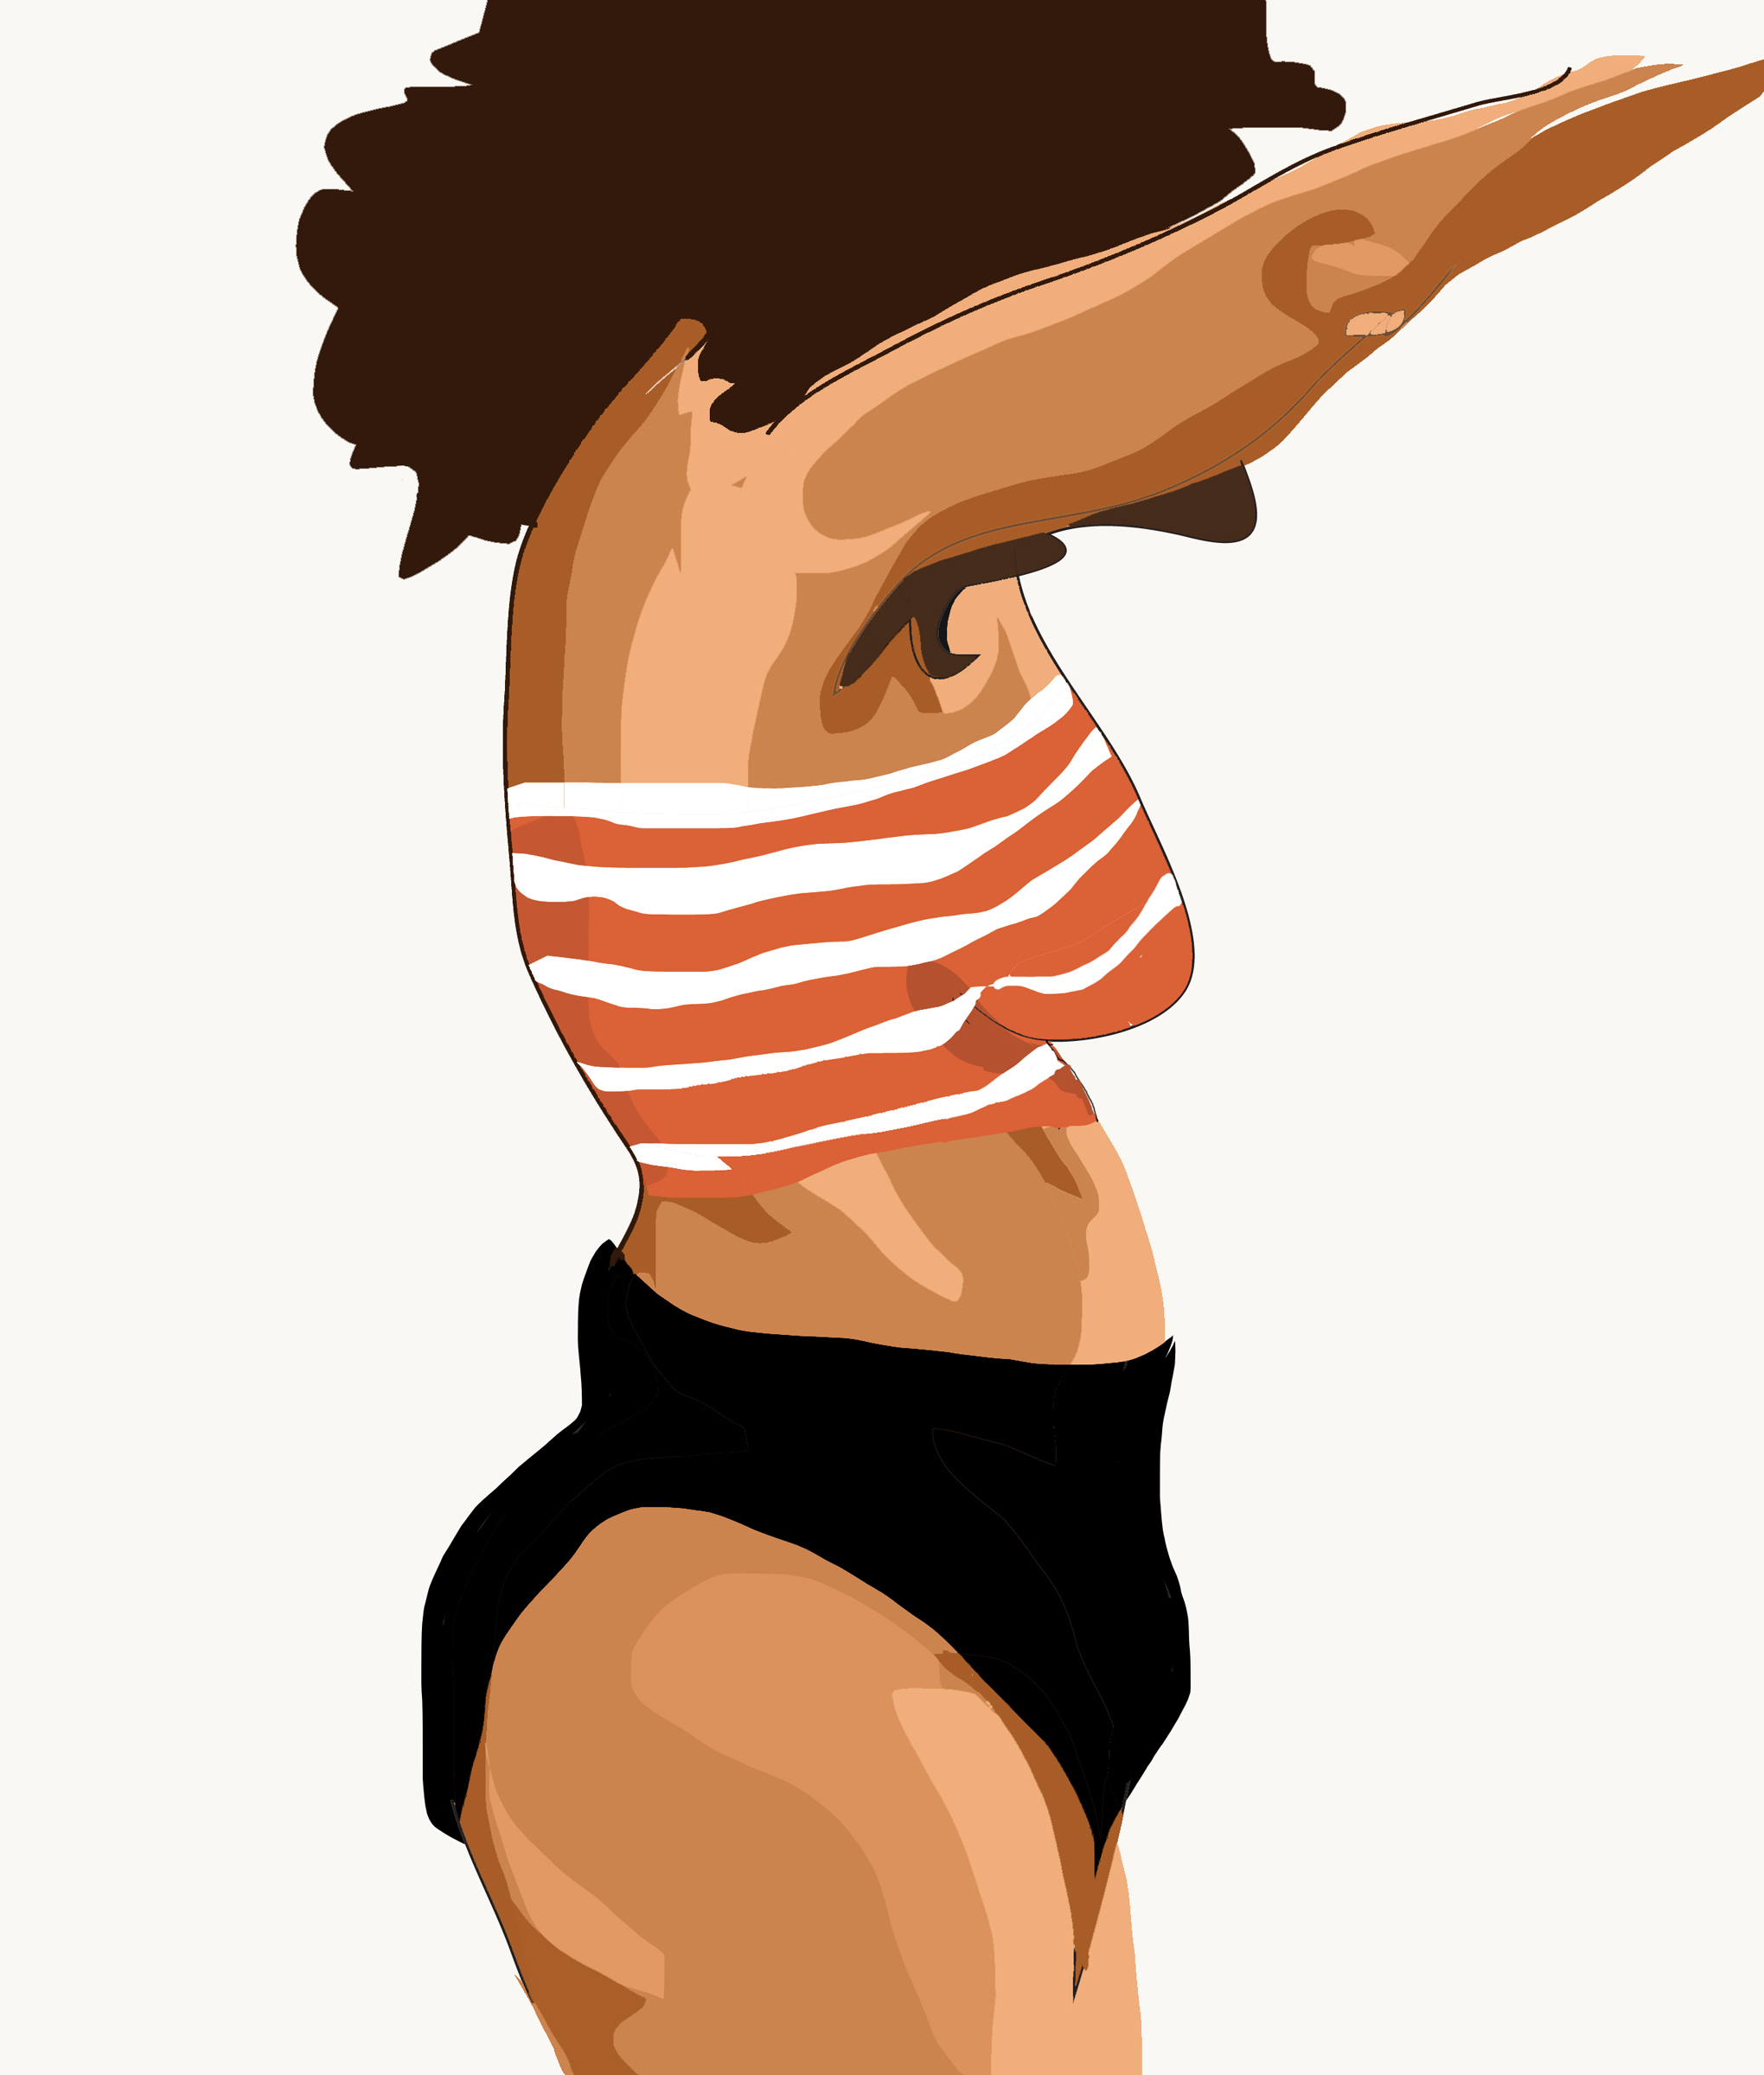 Art work image by Bleu byrdie of a medium brown skinned person with an Afro, wearing an orange and white tube top and black colored briefs. The person is raising their arms above their head, obscuring the face. The image stops at the top of the thighs.